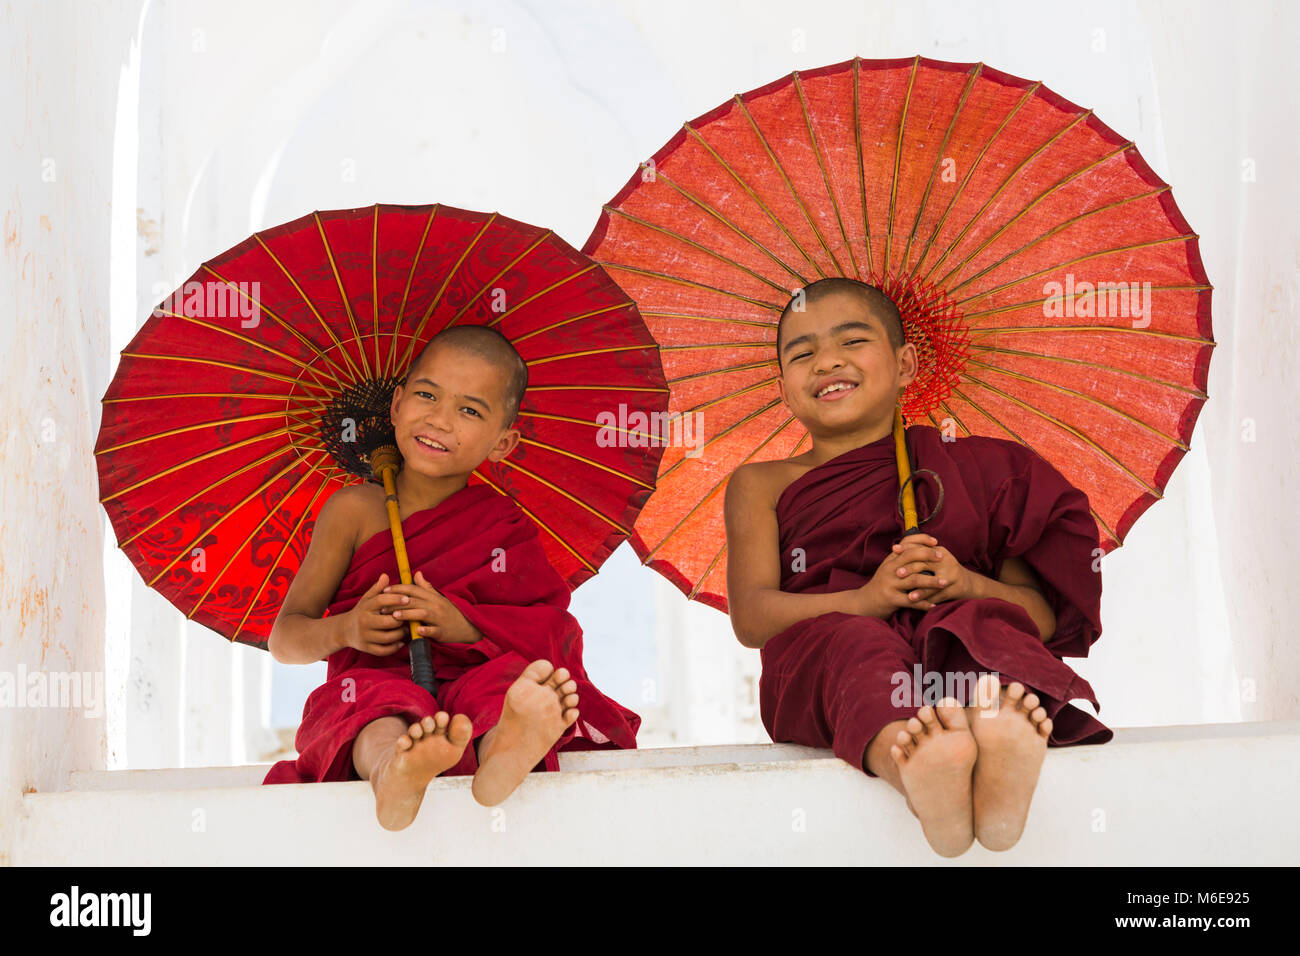 Young novice Buddhist monks holding parasols at Myatheindan Pagoda (also known as Hsinbyume Pagoda), Mingun, Myanmar - Stock Image